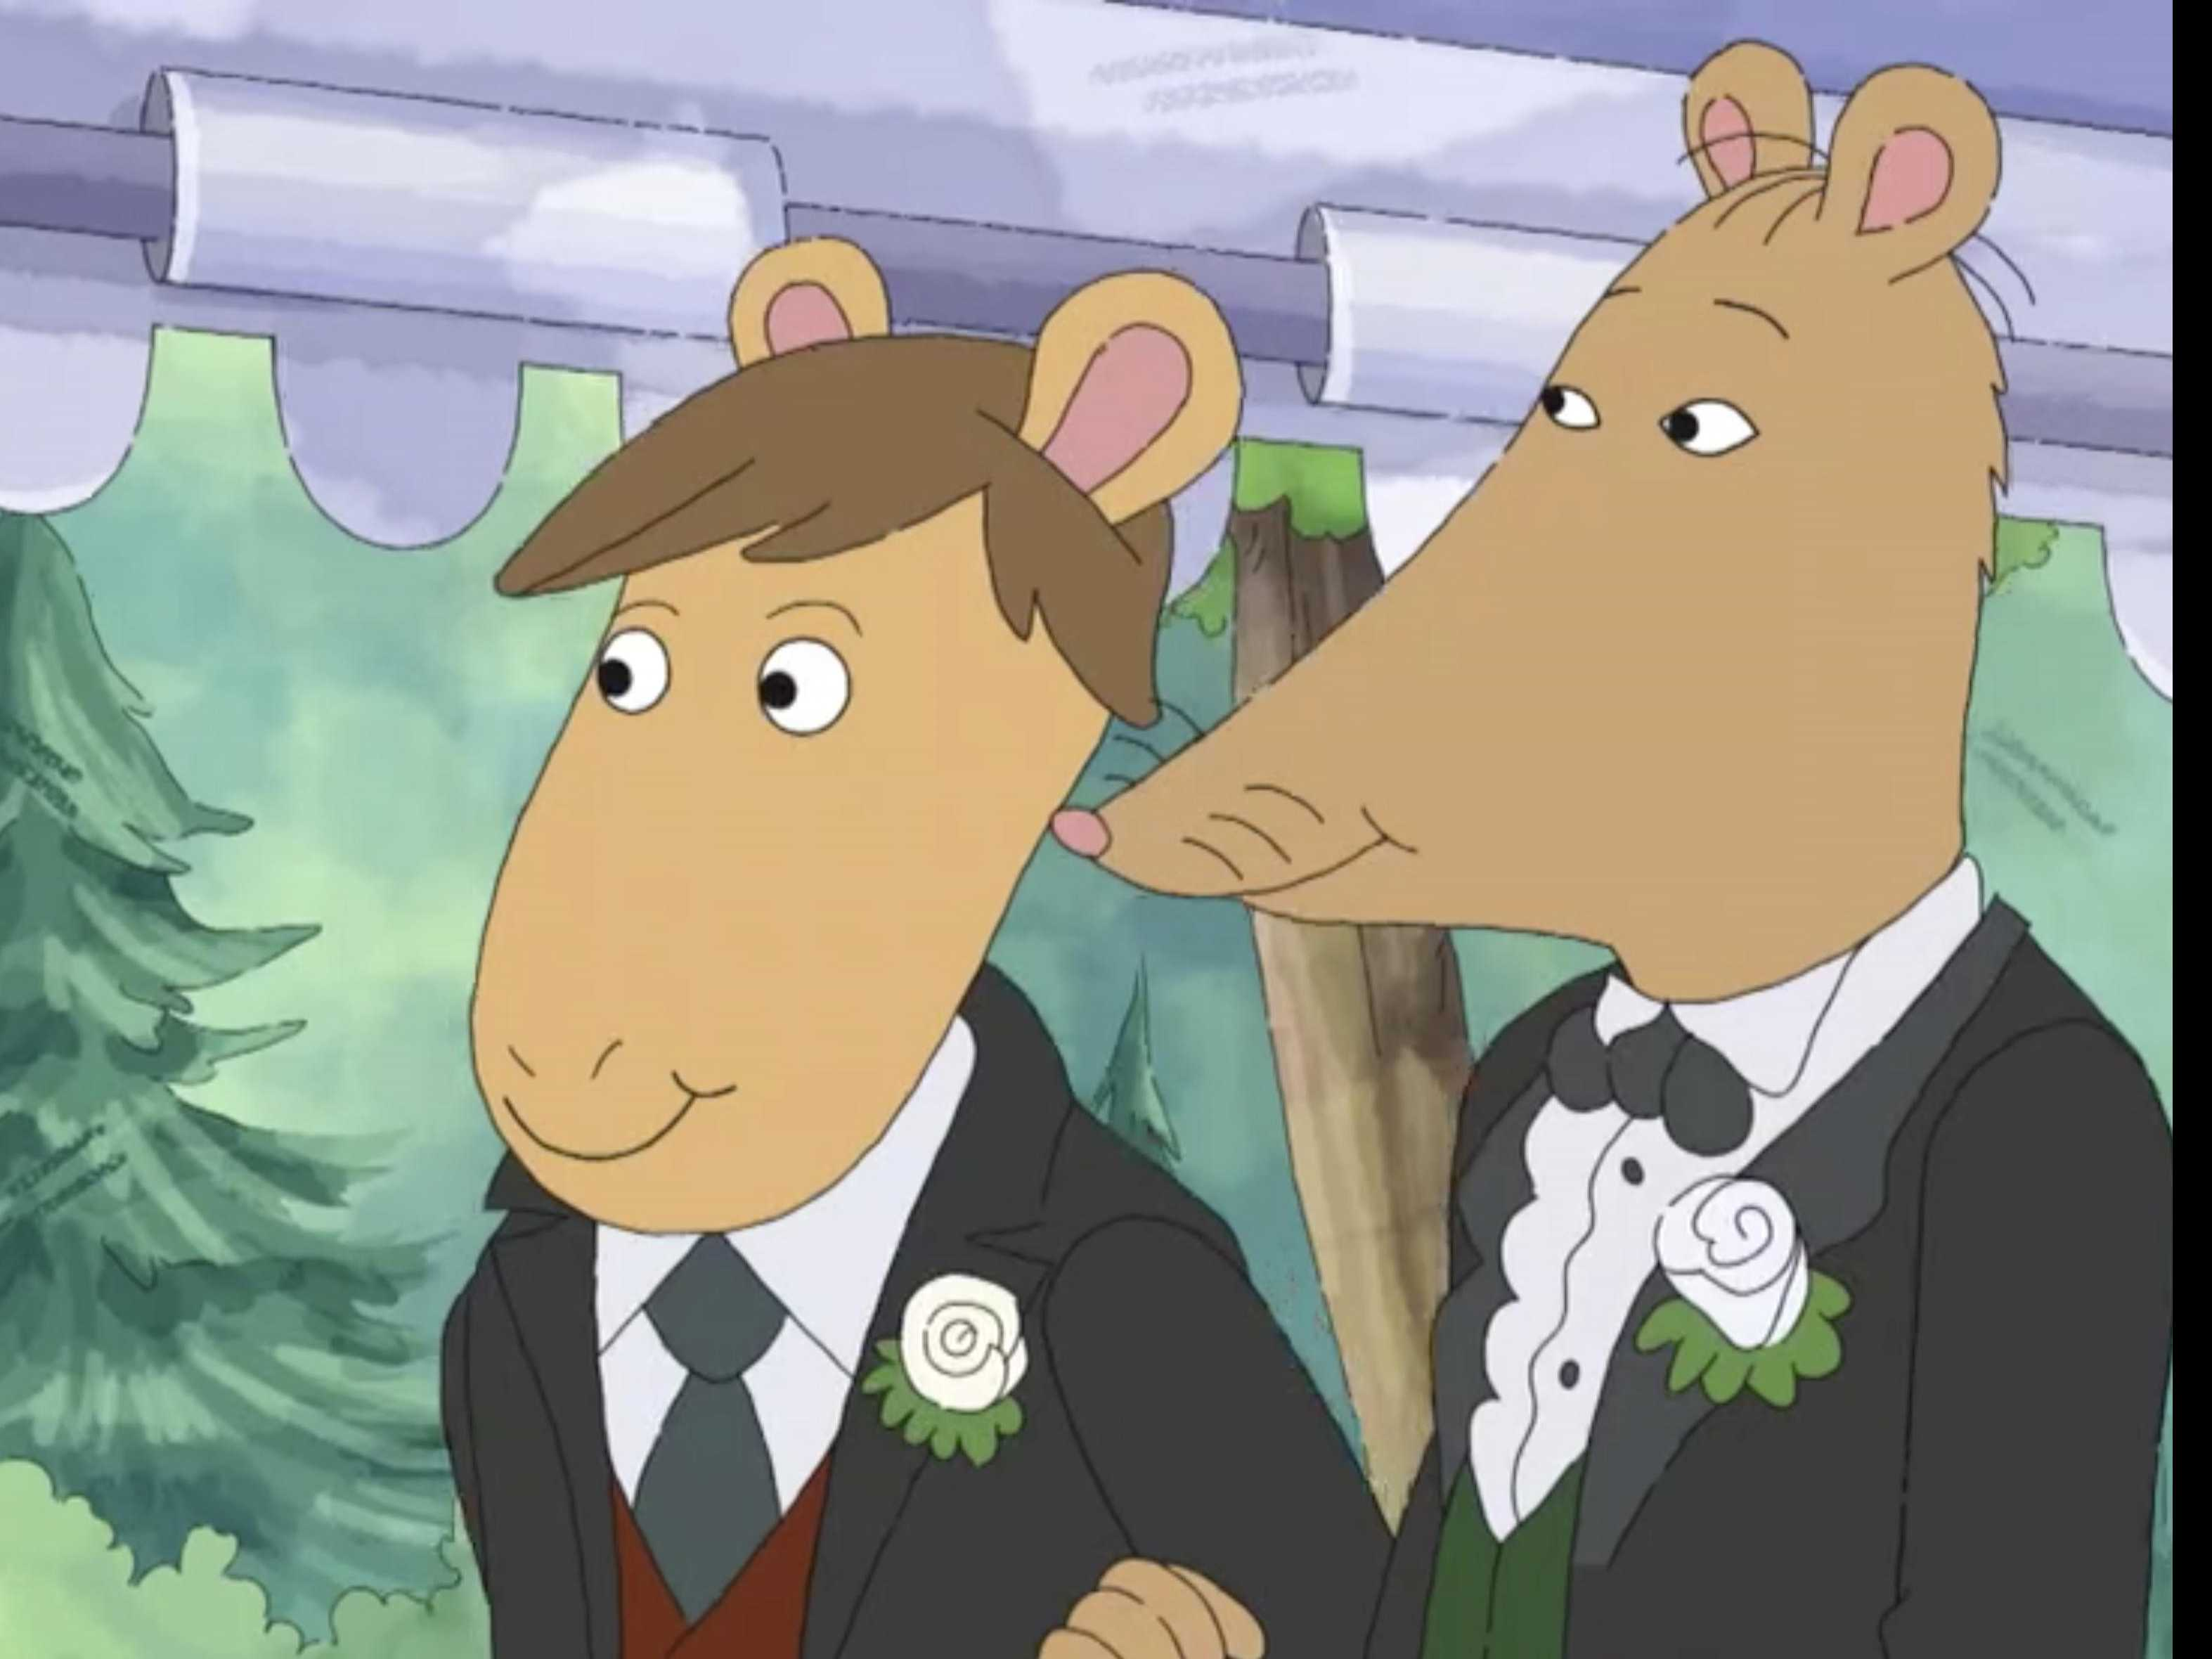 Like Alabama, Arkansas Public TV Didn't Air Gay Wedding 'Arthur' Episode